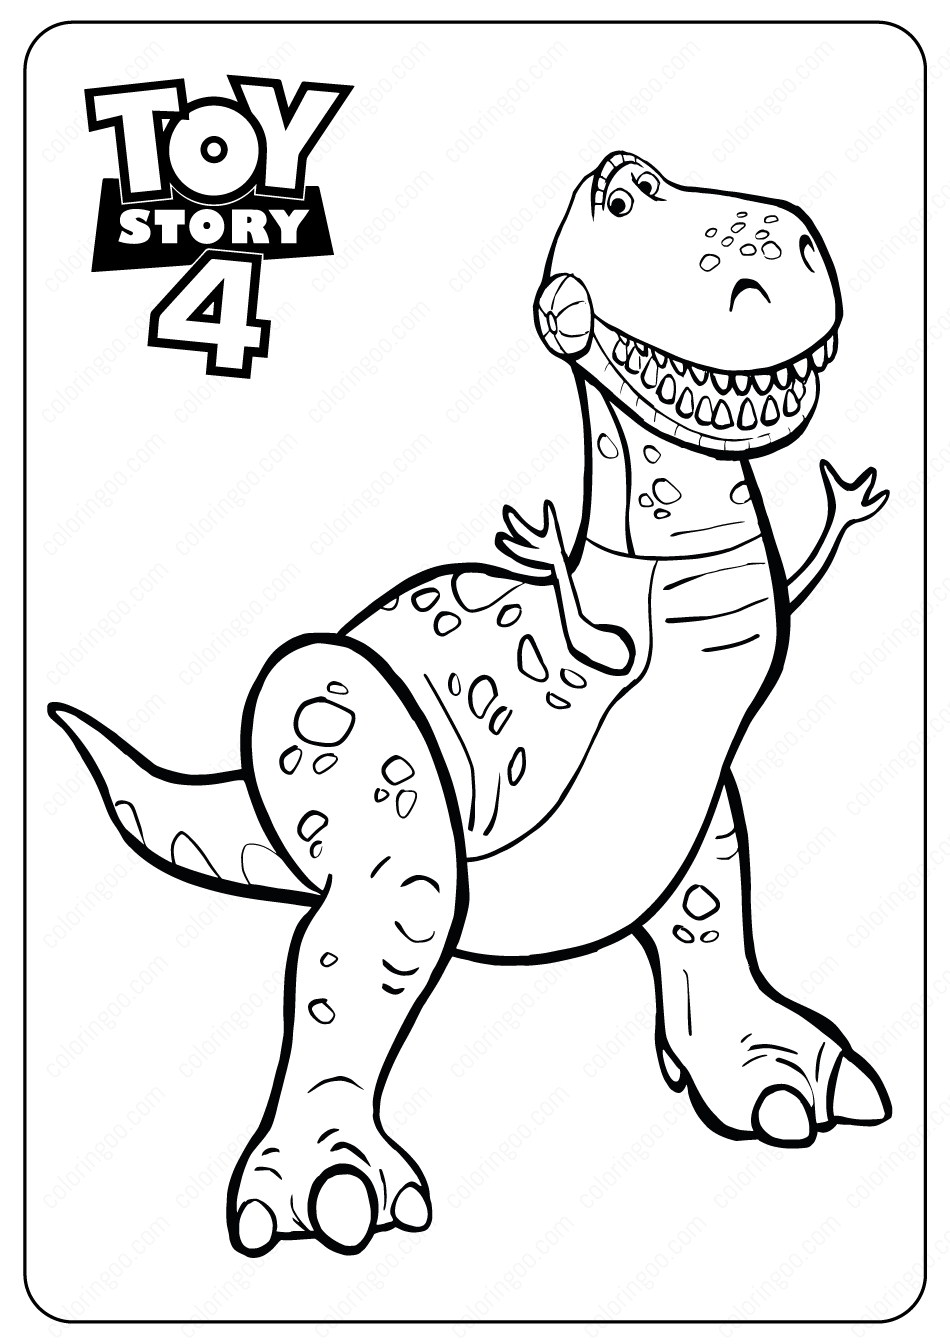 Free Printable Toy Story Rex PDF Coloring Pages